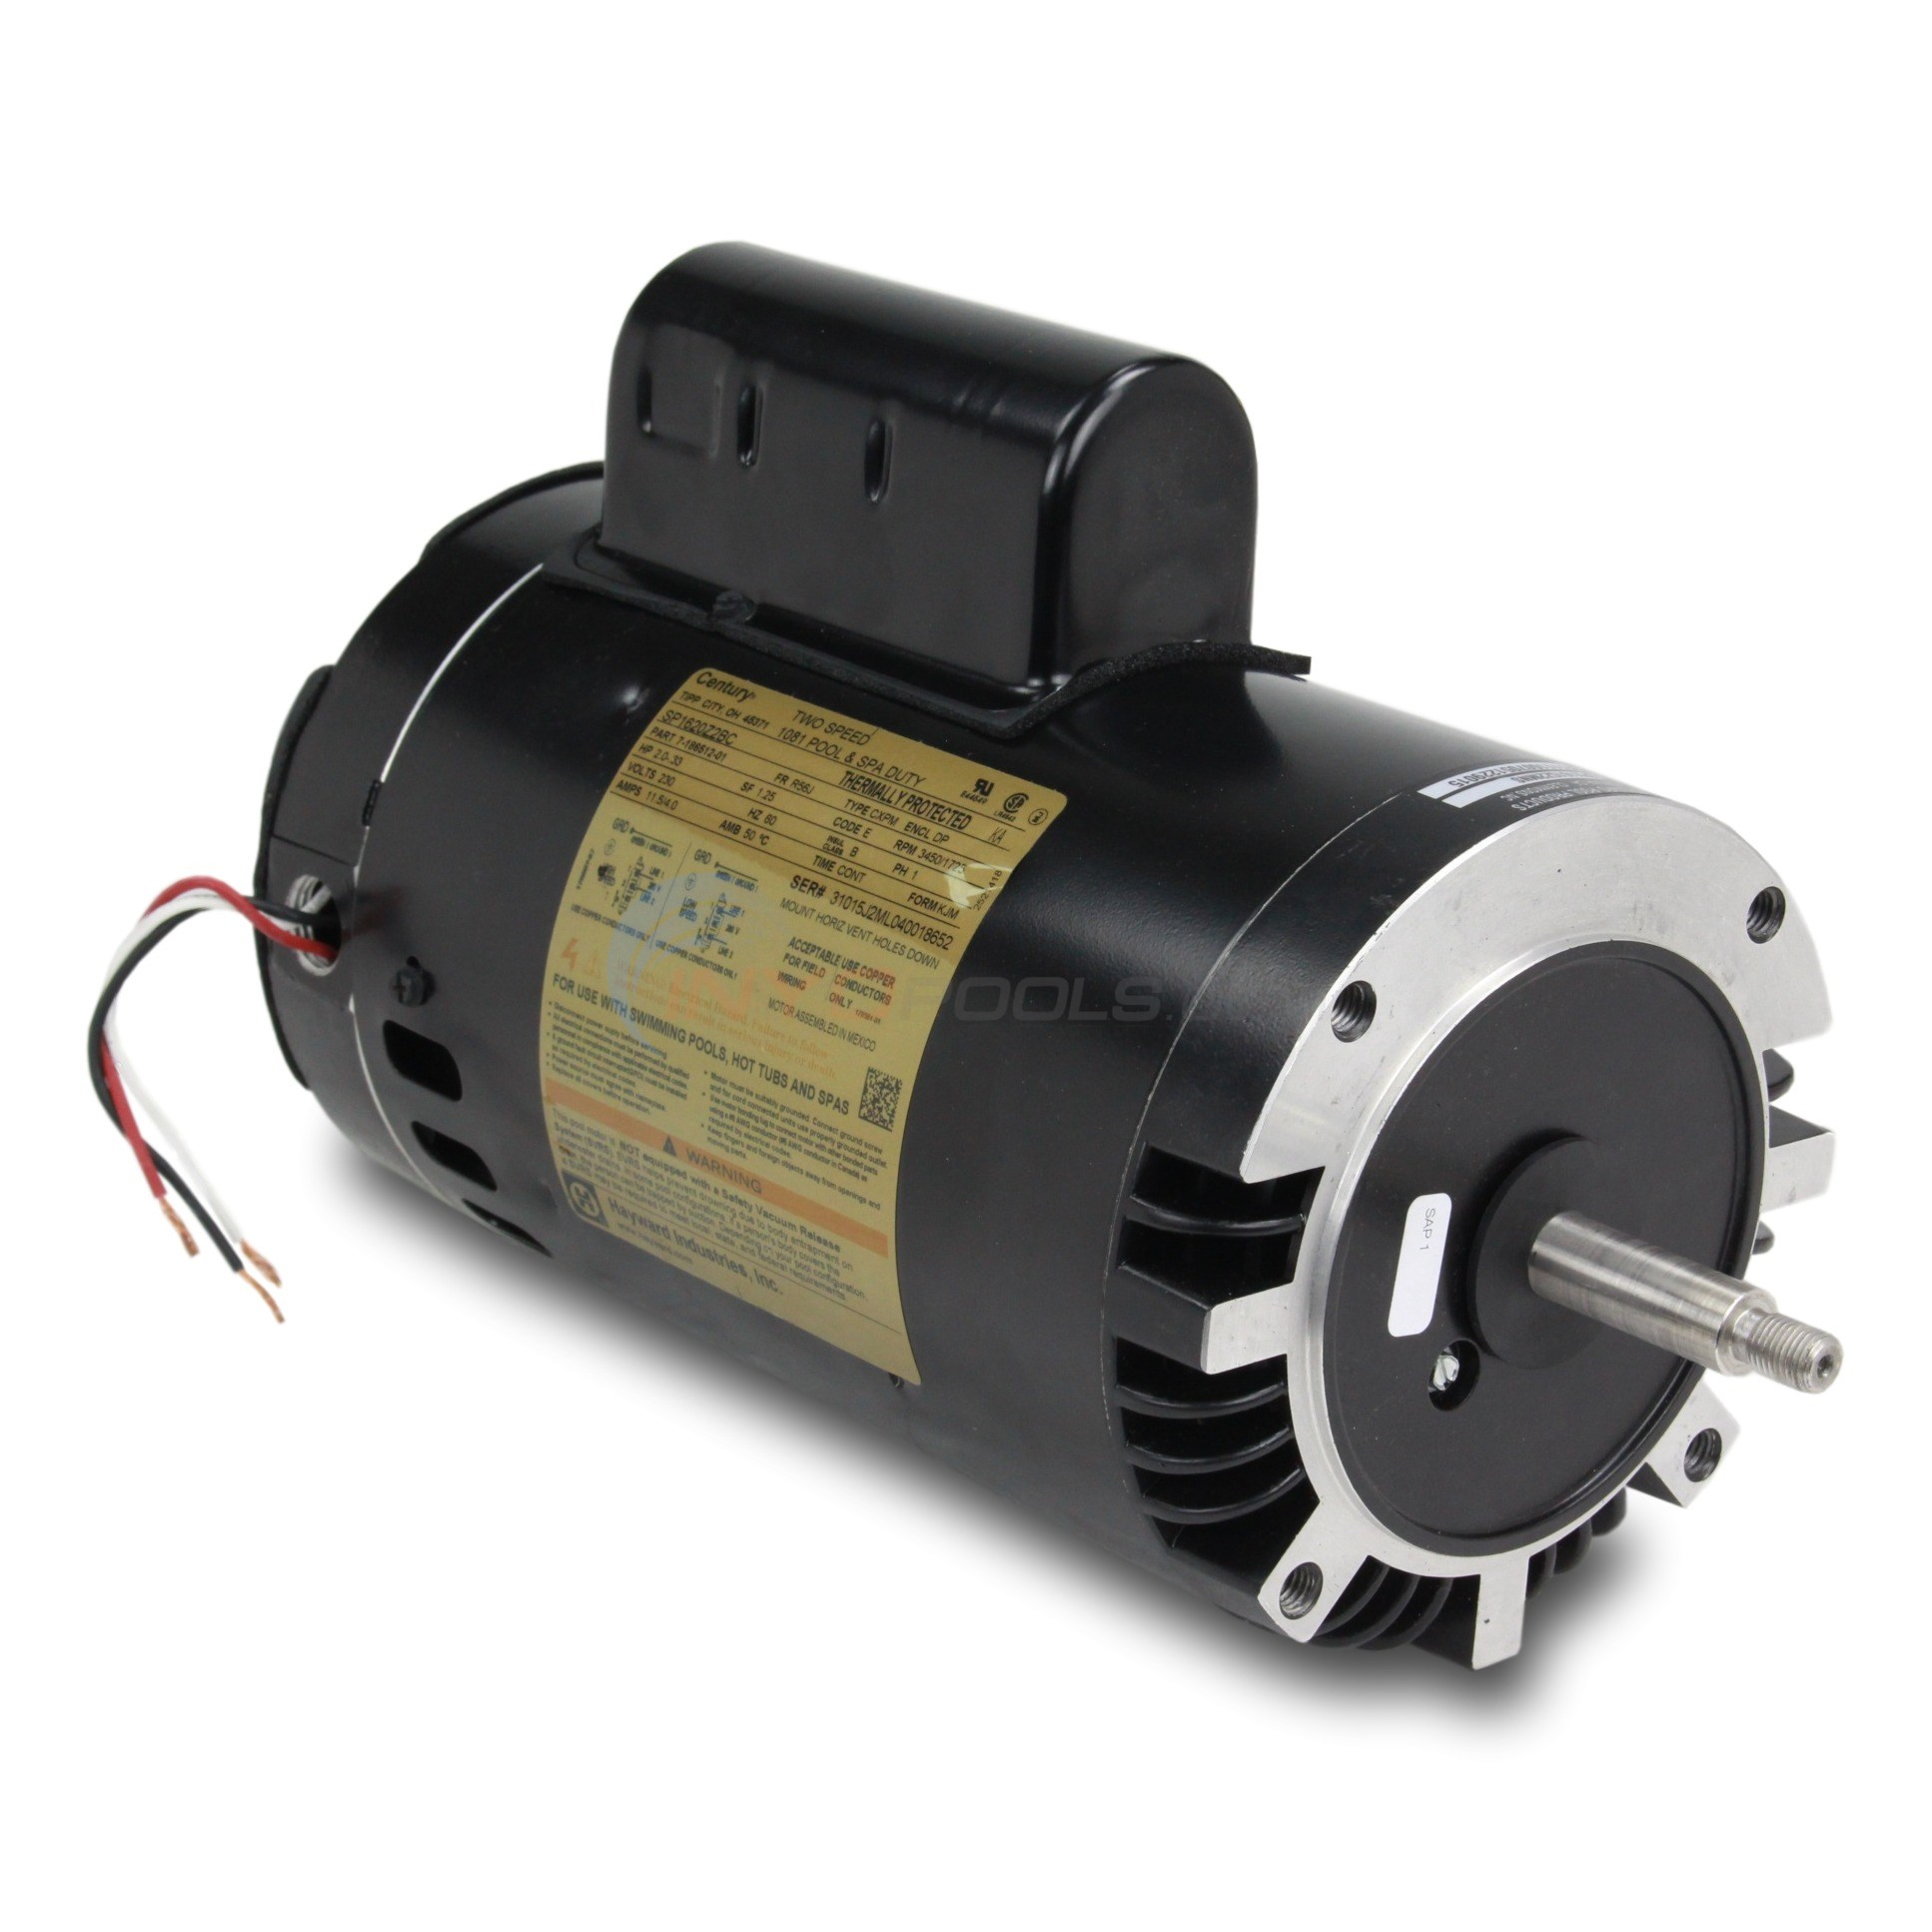 Hayward 2hp 230v 2-Speed Uprated NorthStar Motor - SPX1615Z2MNS